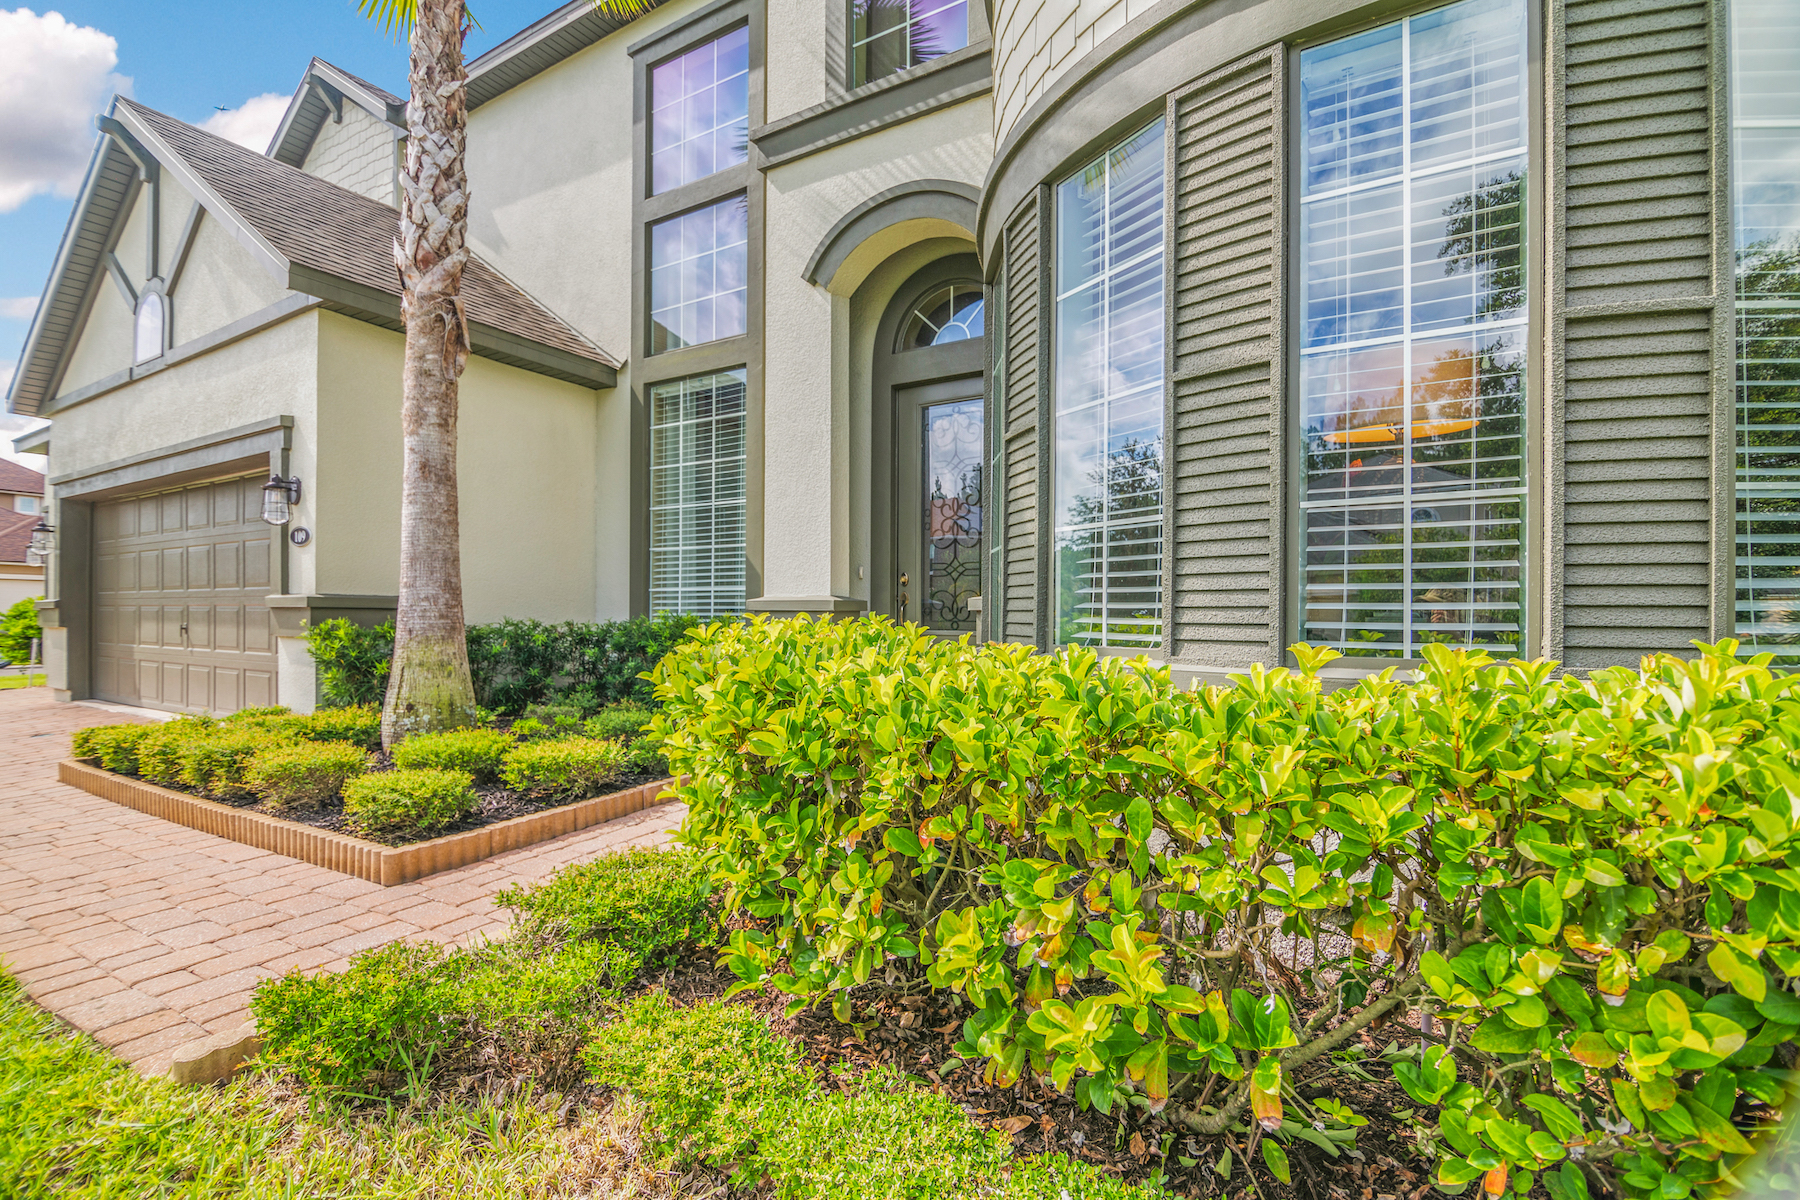 Single Family Homes for Sale at Durbin Crossing 109 Chatsworth Drive St. Johns, Florida 32259 United States